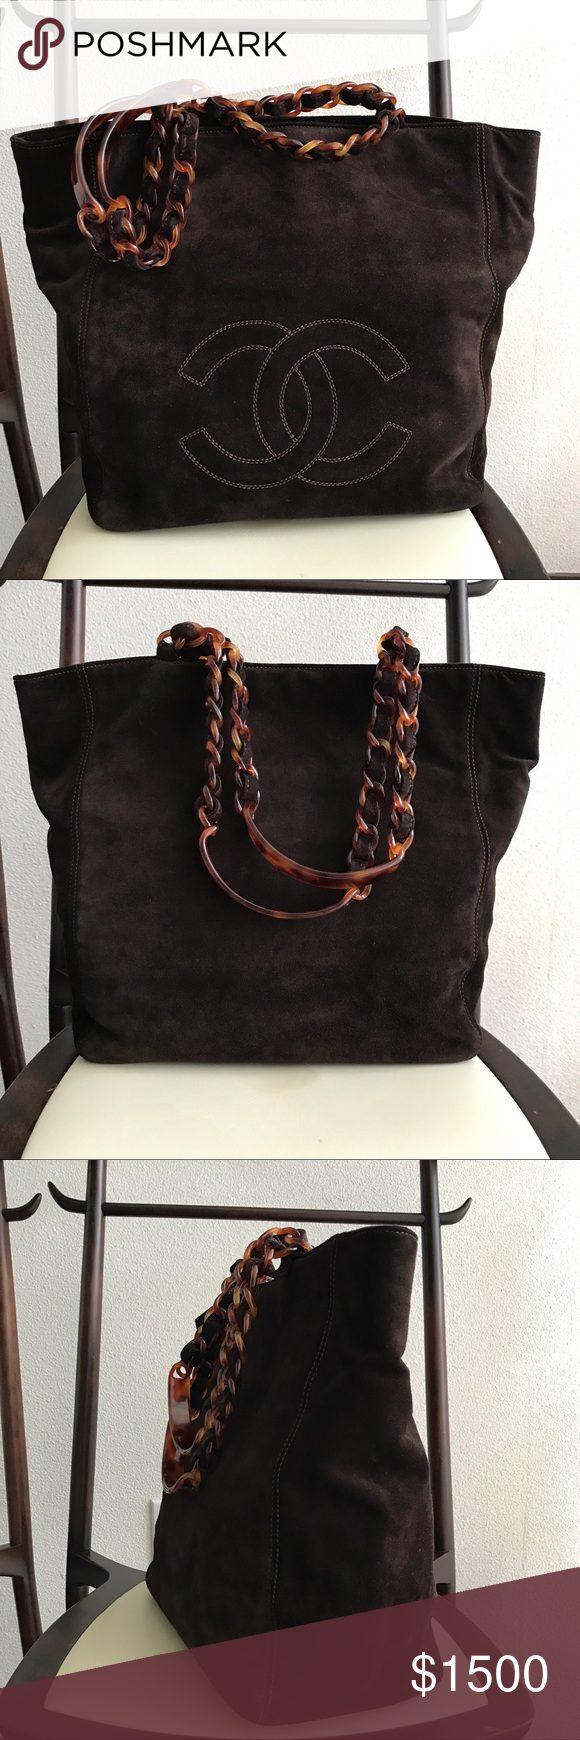 692e91f0e55a CHANEL BROWN SUEDE SHOPPING TOTE Authentic CHANEL